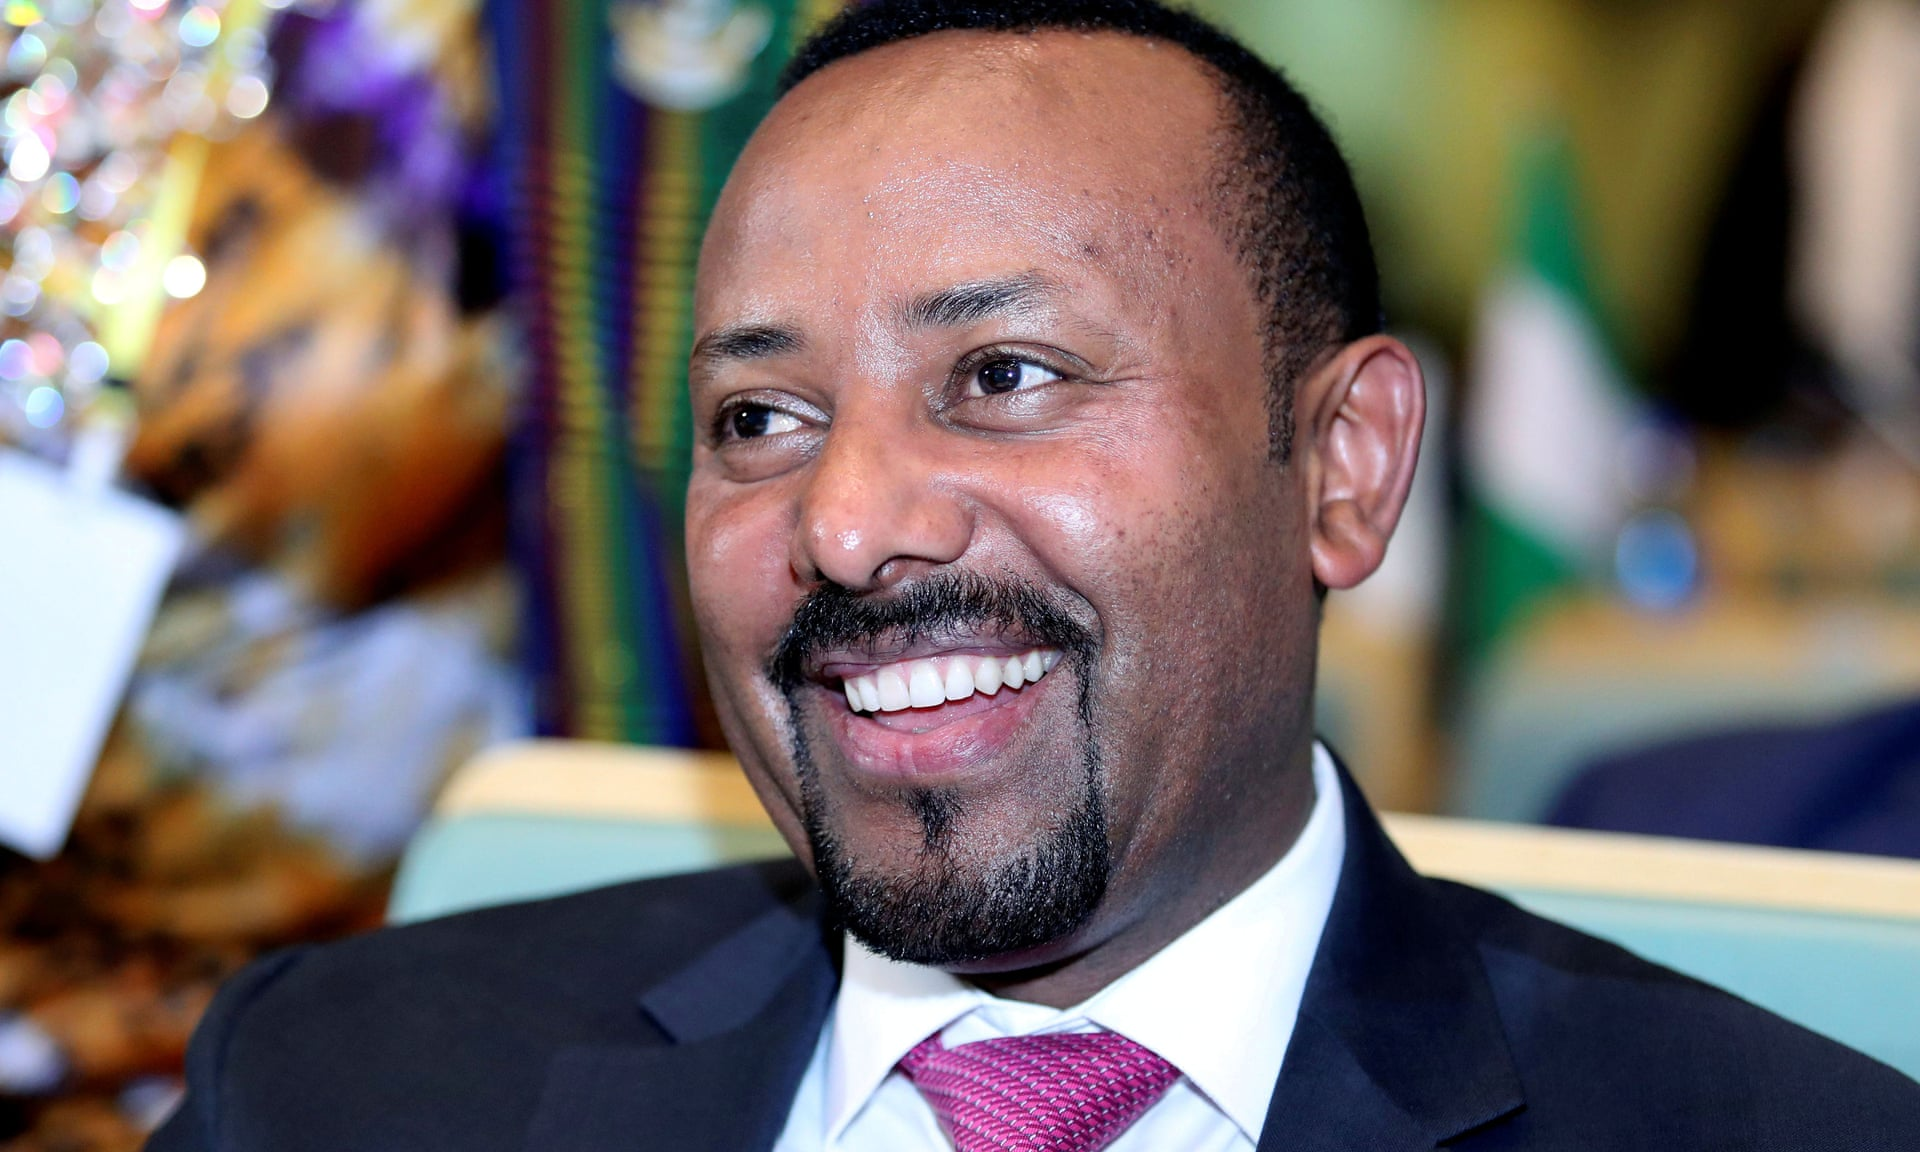 Abiy Ahmed, Ethiopia's PM, Wins 2019 Nobel Peace Prize